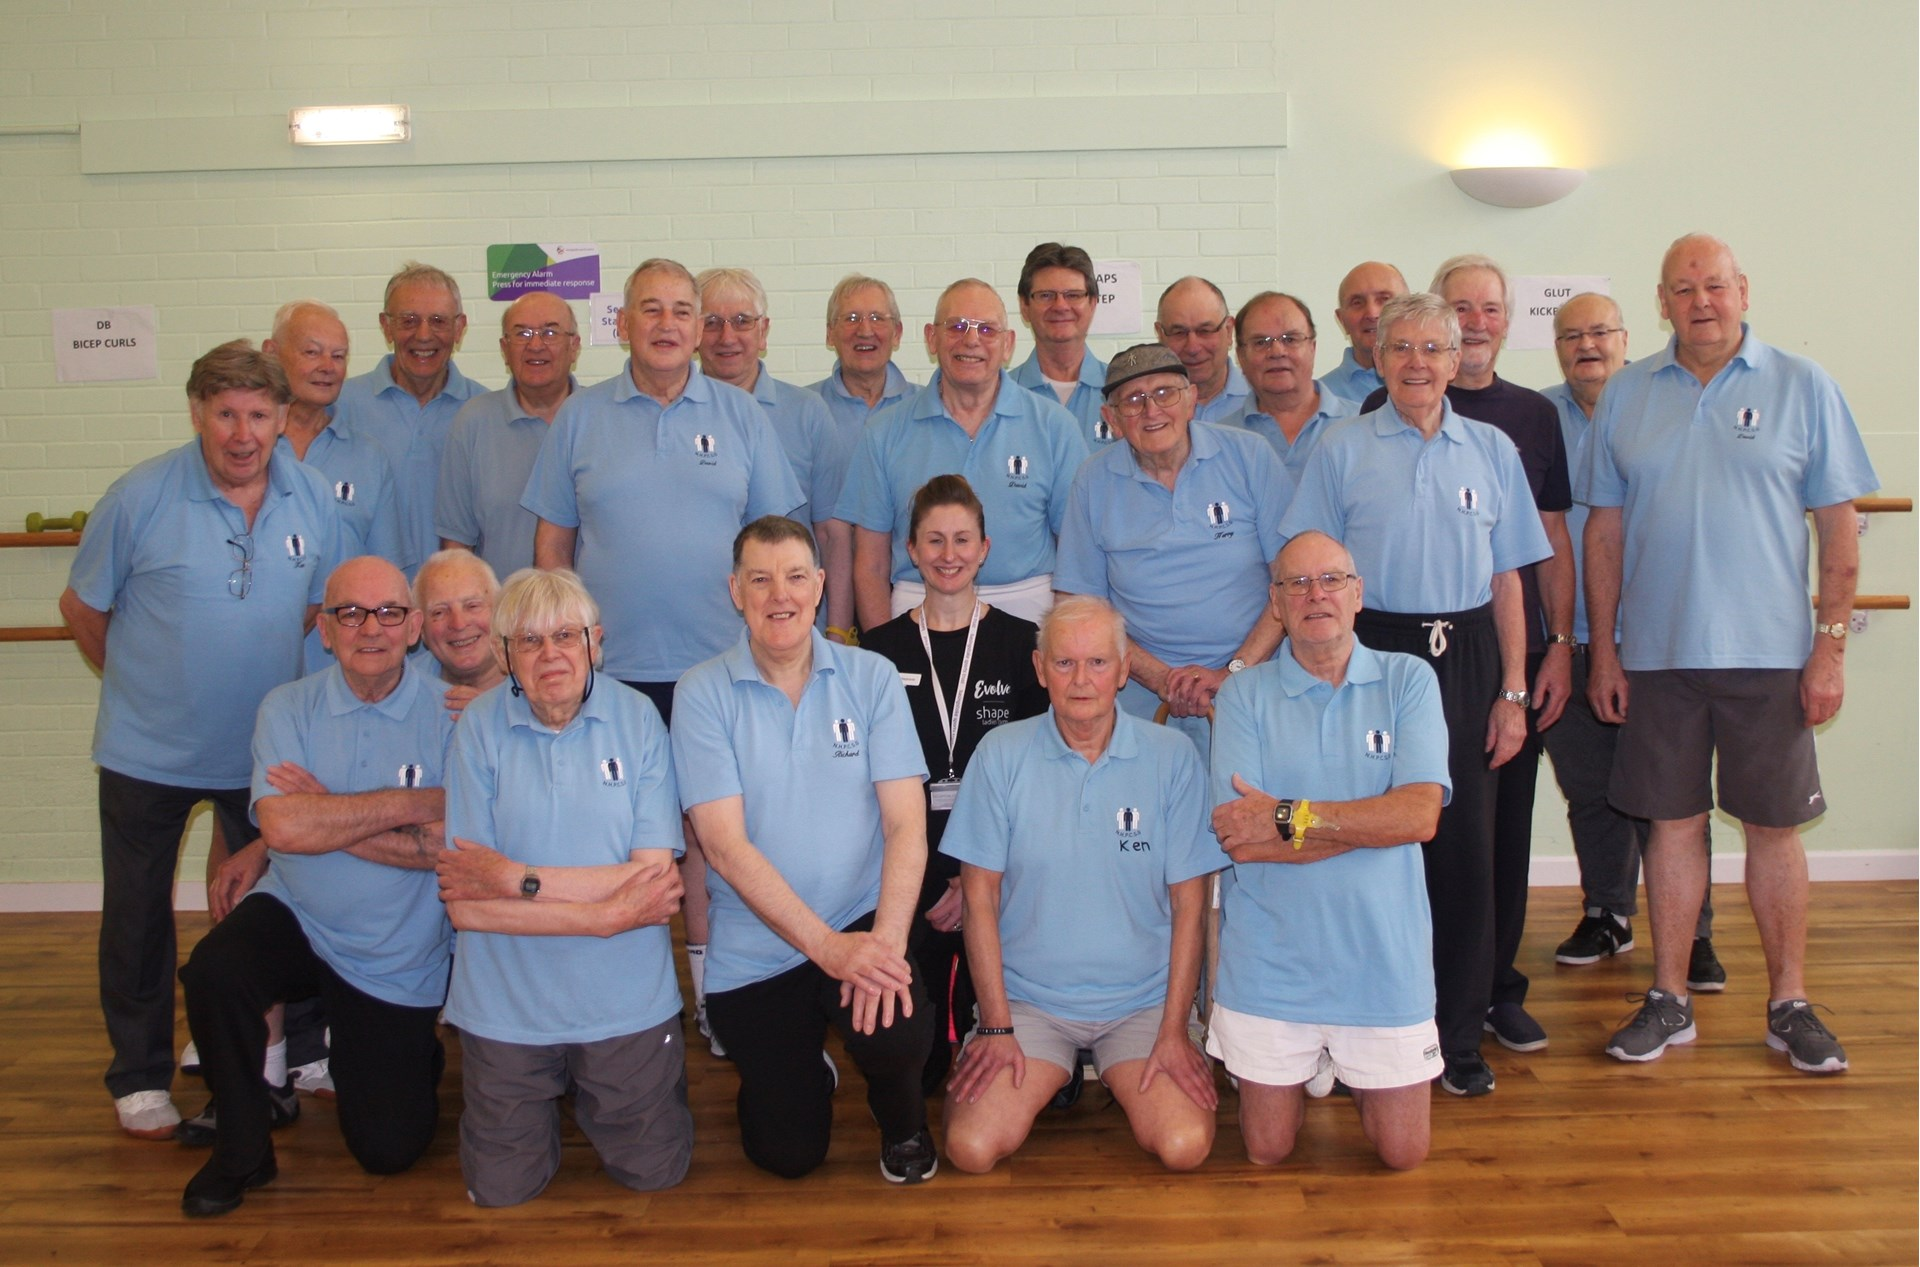 North Hampshire Prostate Cancer Support Group Exercise Group